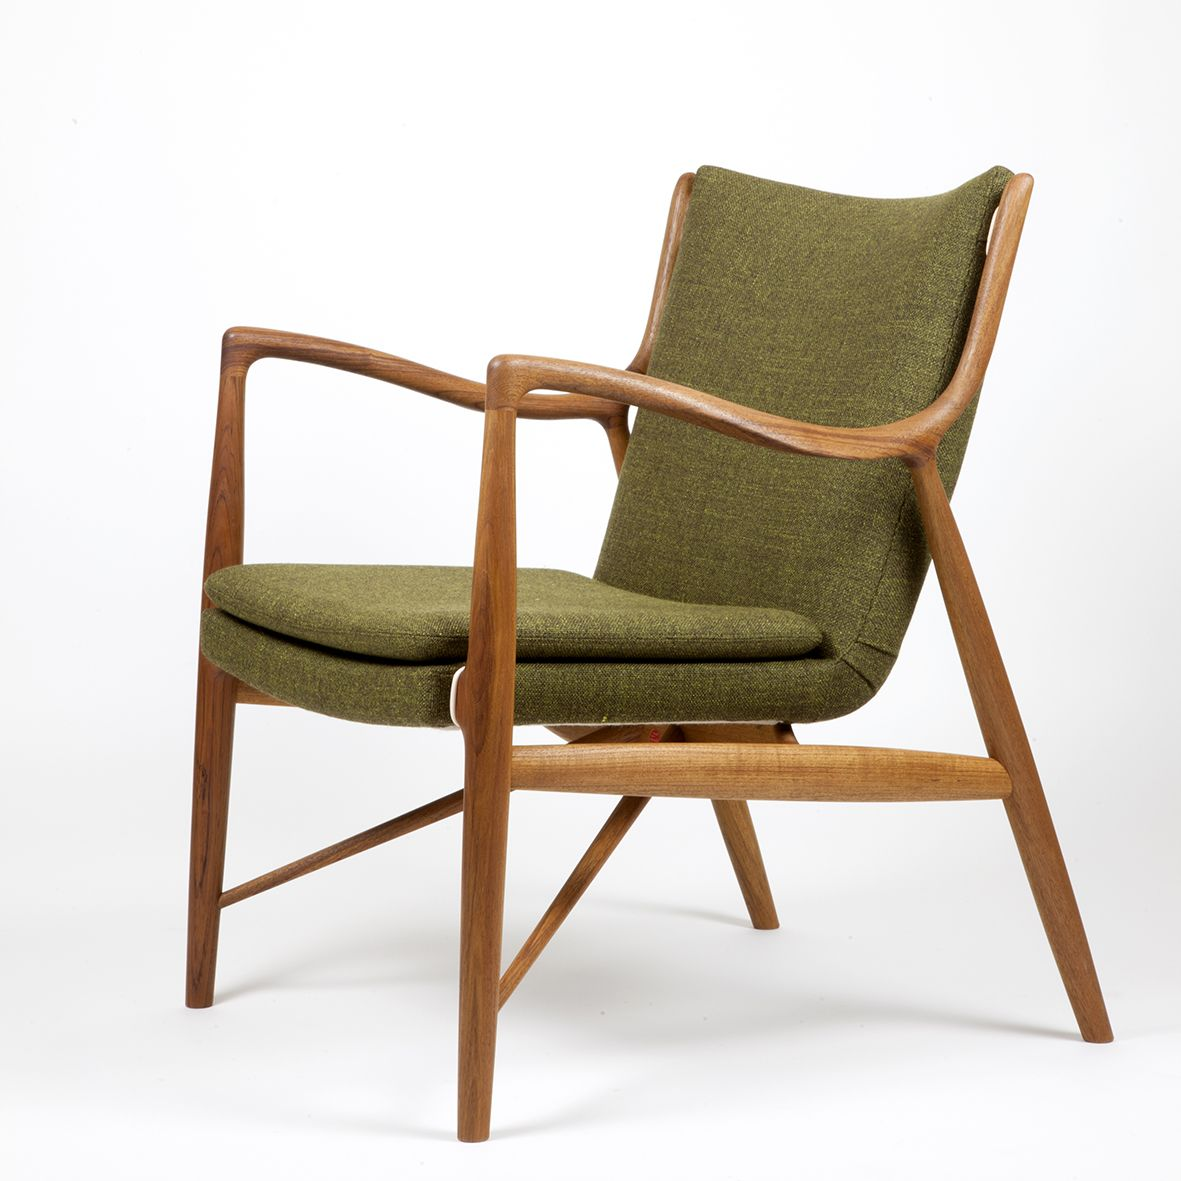 45 Chair Designed In 1945 Finn Juhl By Onecollection